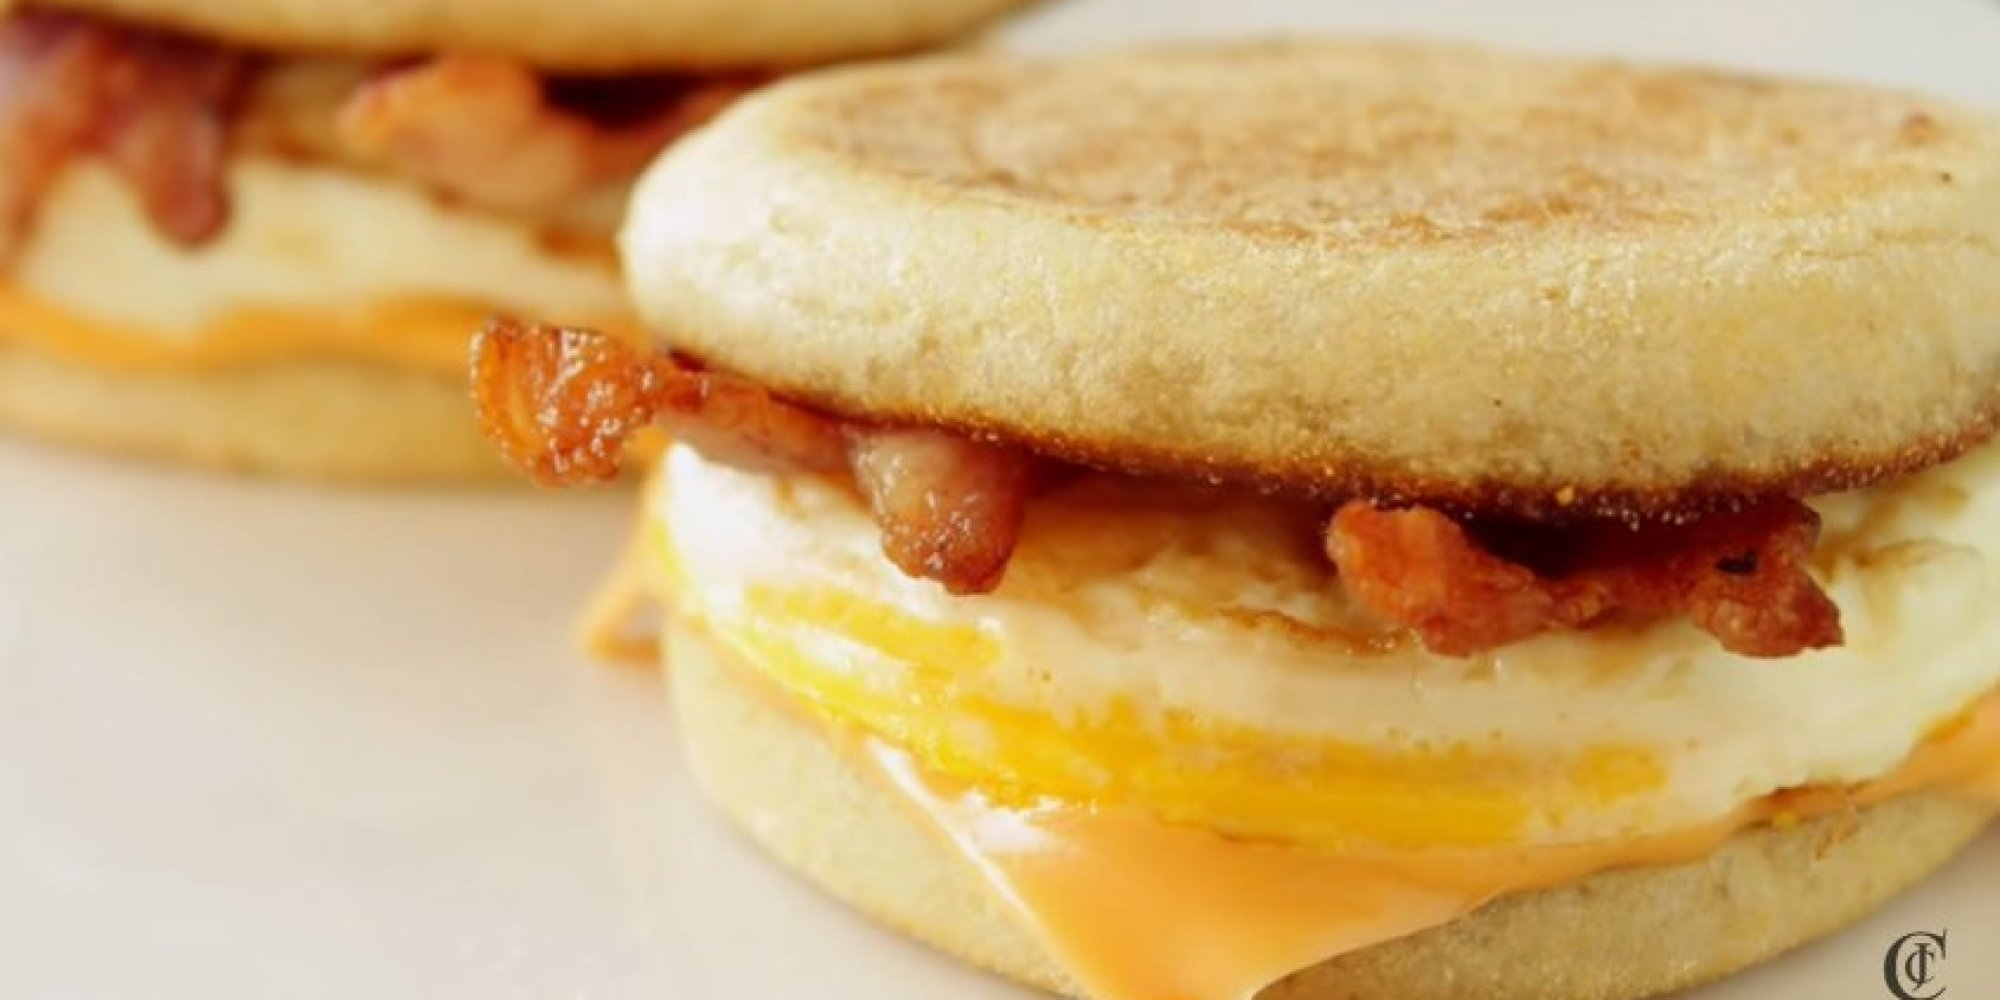 How To Make A Bacon And Egg McMuffin At Home | HuffPost UK